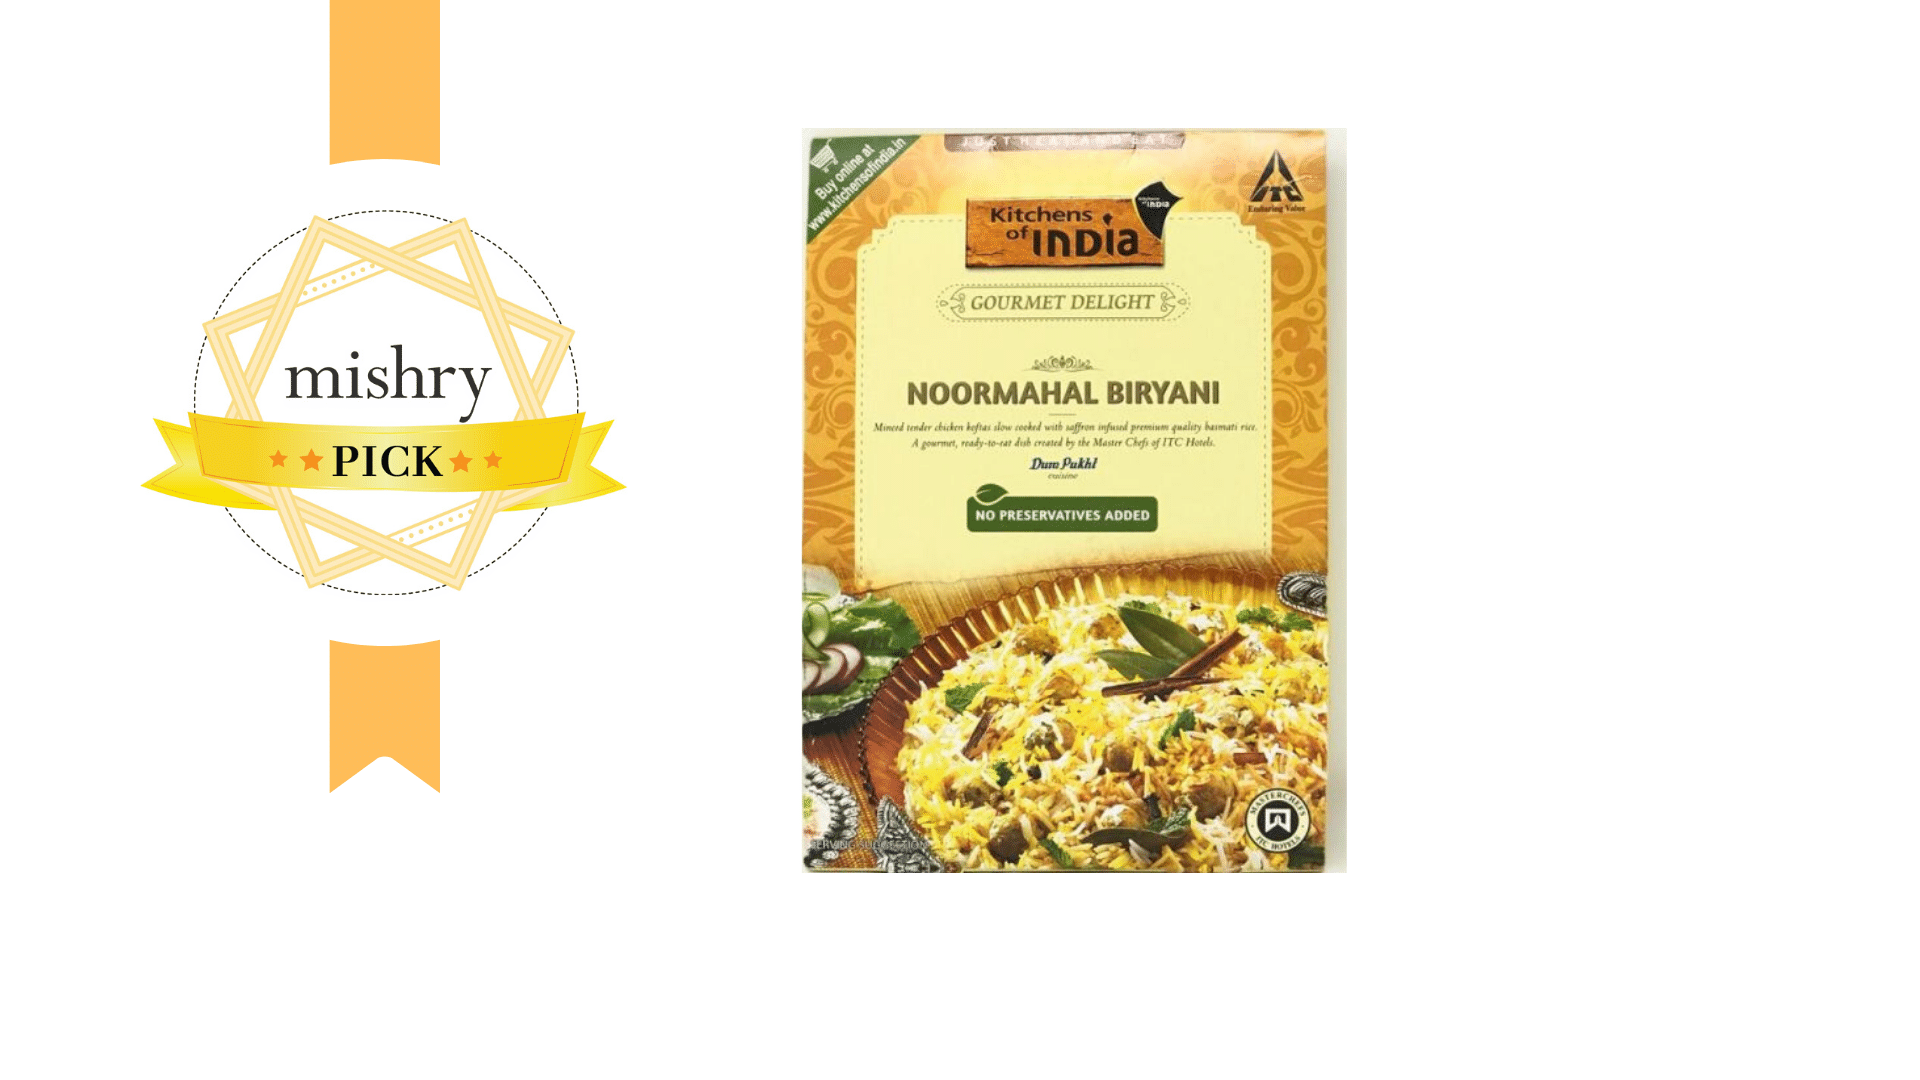 Kitchens' Of India's Noormahal Biryani-mishry